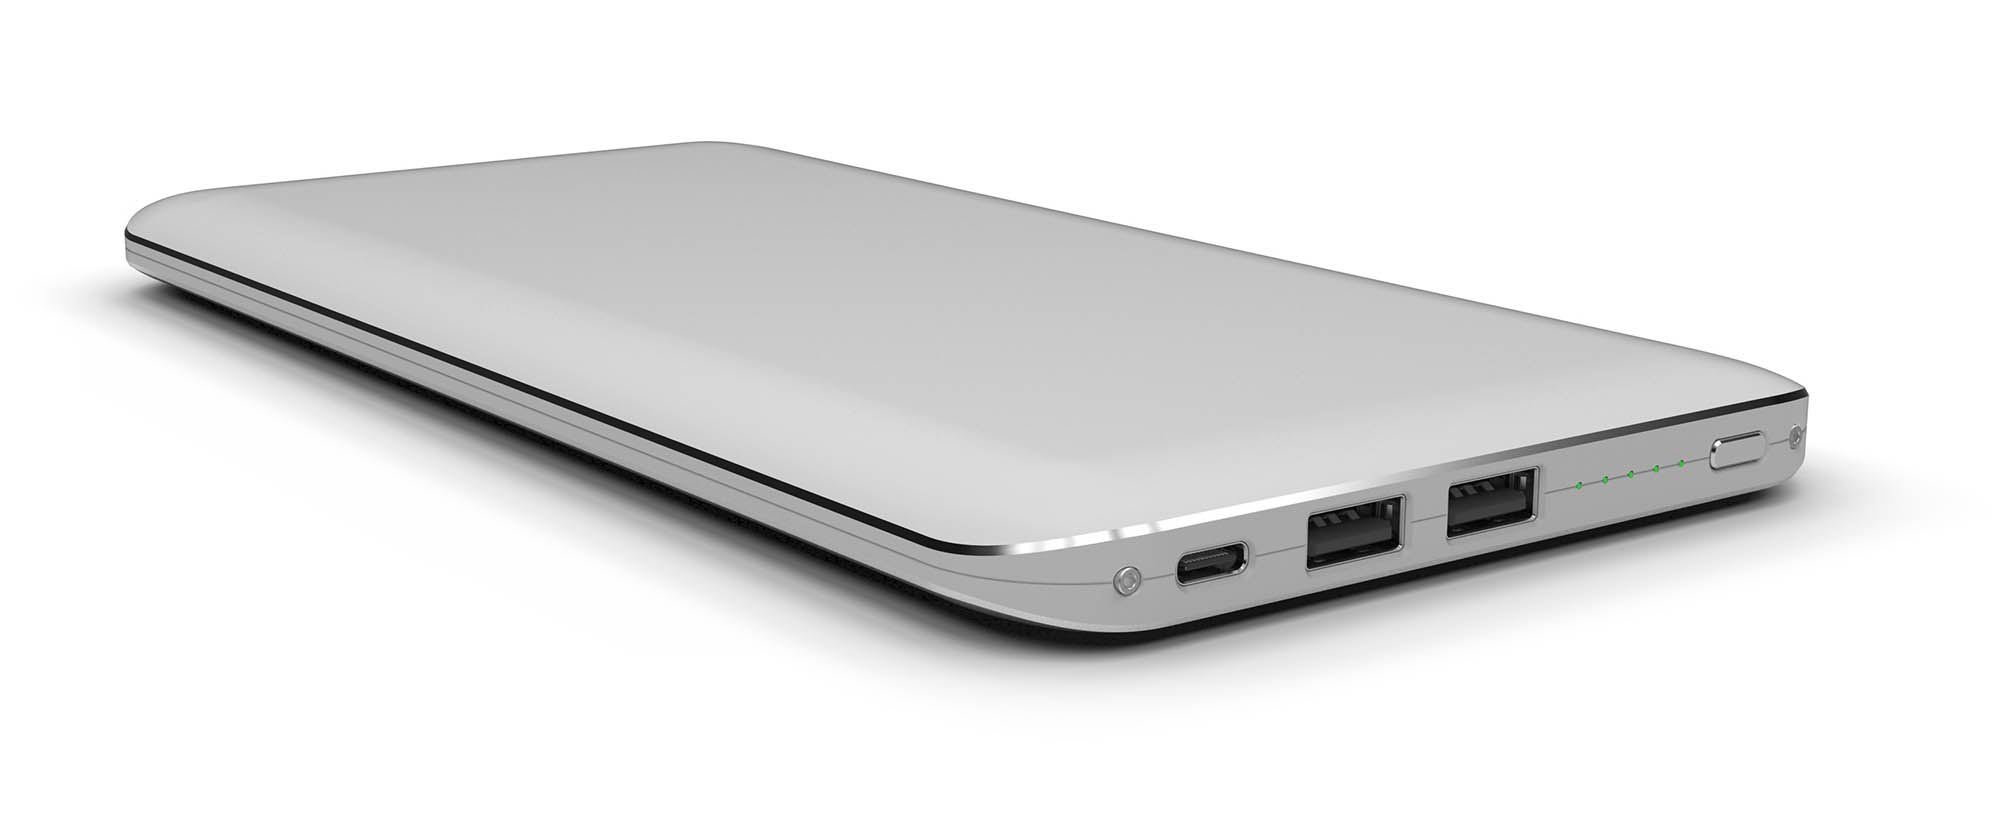 Get free power bank from Batterybox